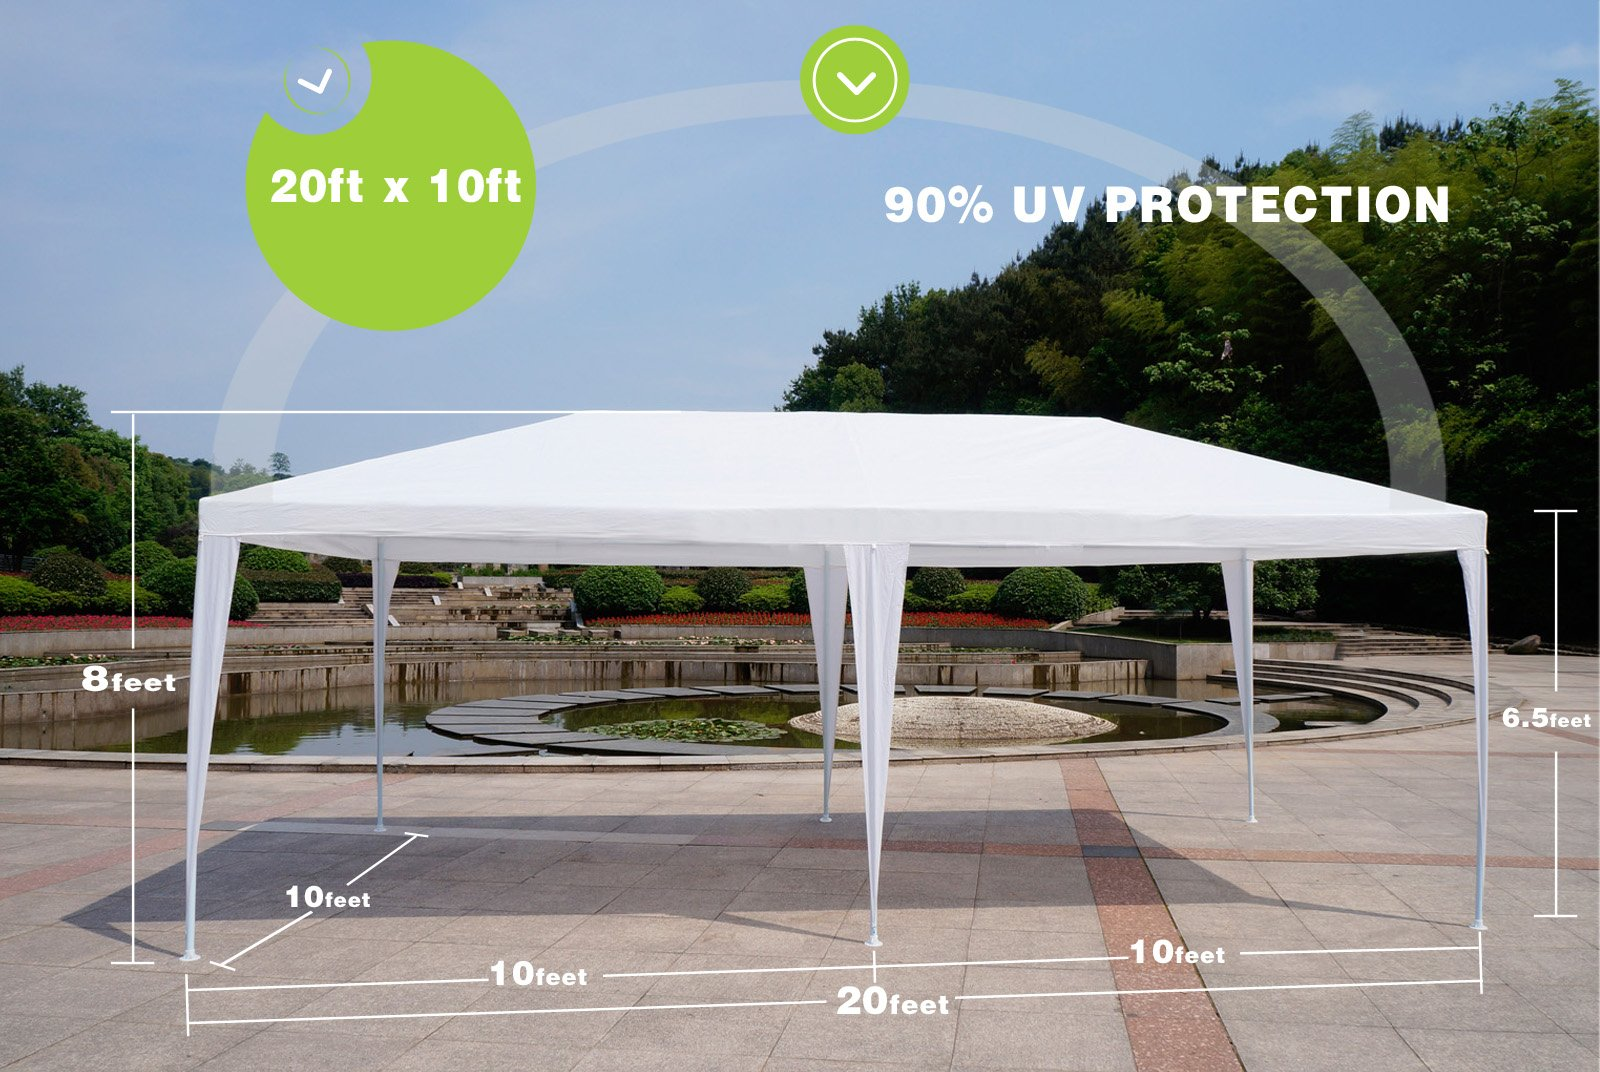 Uscanopy 10'x30' Party Wedding Outdoor Patio Tent Canopy Heavy duty Gazebo Pavilion Event by gaoshanqing (Image #3)